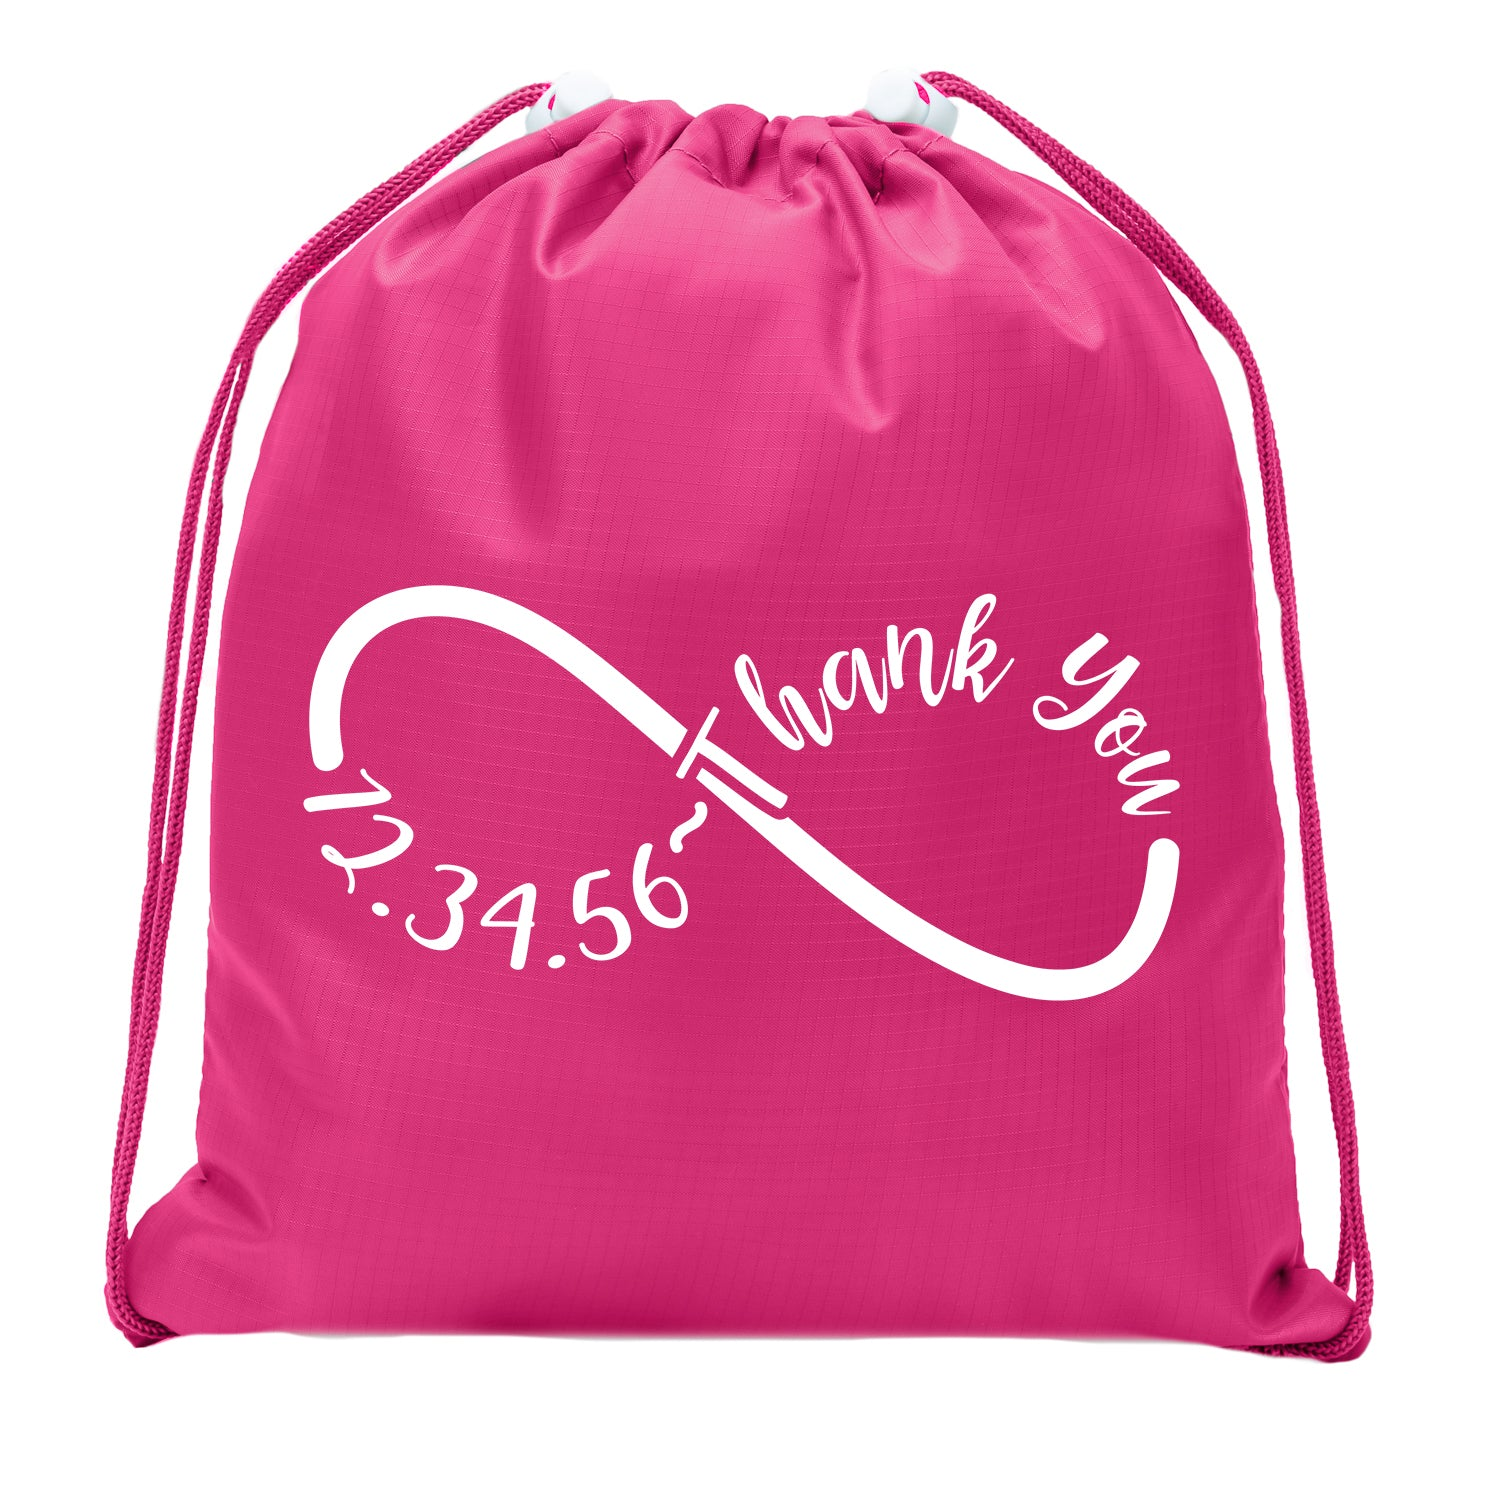 Accessory - Mini Welcome Bags For Weddings, Reusable Thank You Bags, Wedding Gifts For Guest - Custom 3